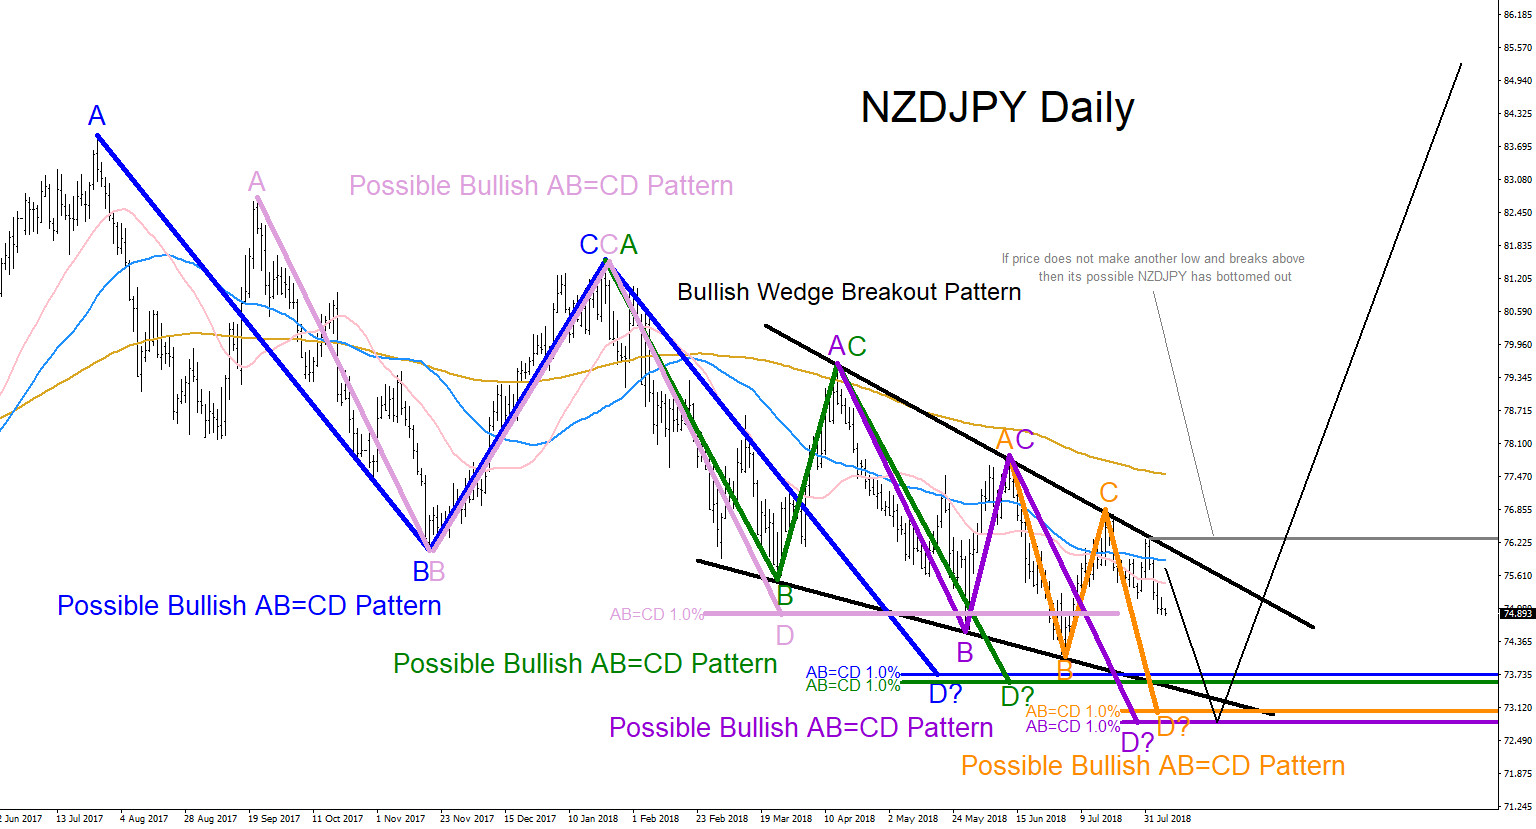 NZDJPY, elliottwave, patterns, pattern, bullish elliott wave, forex, technical analysis